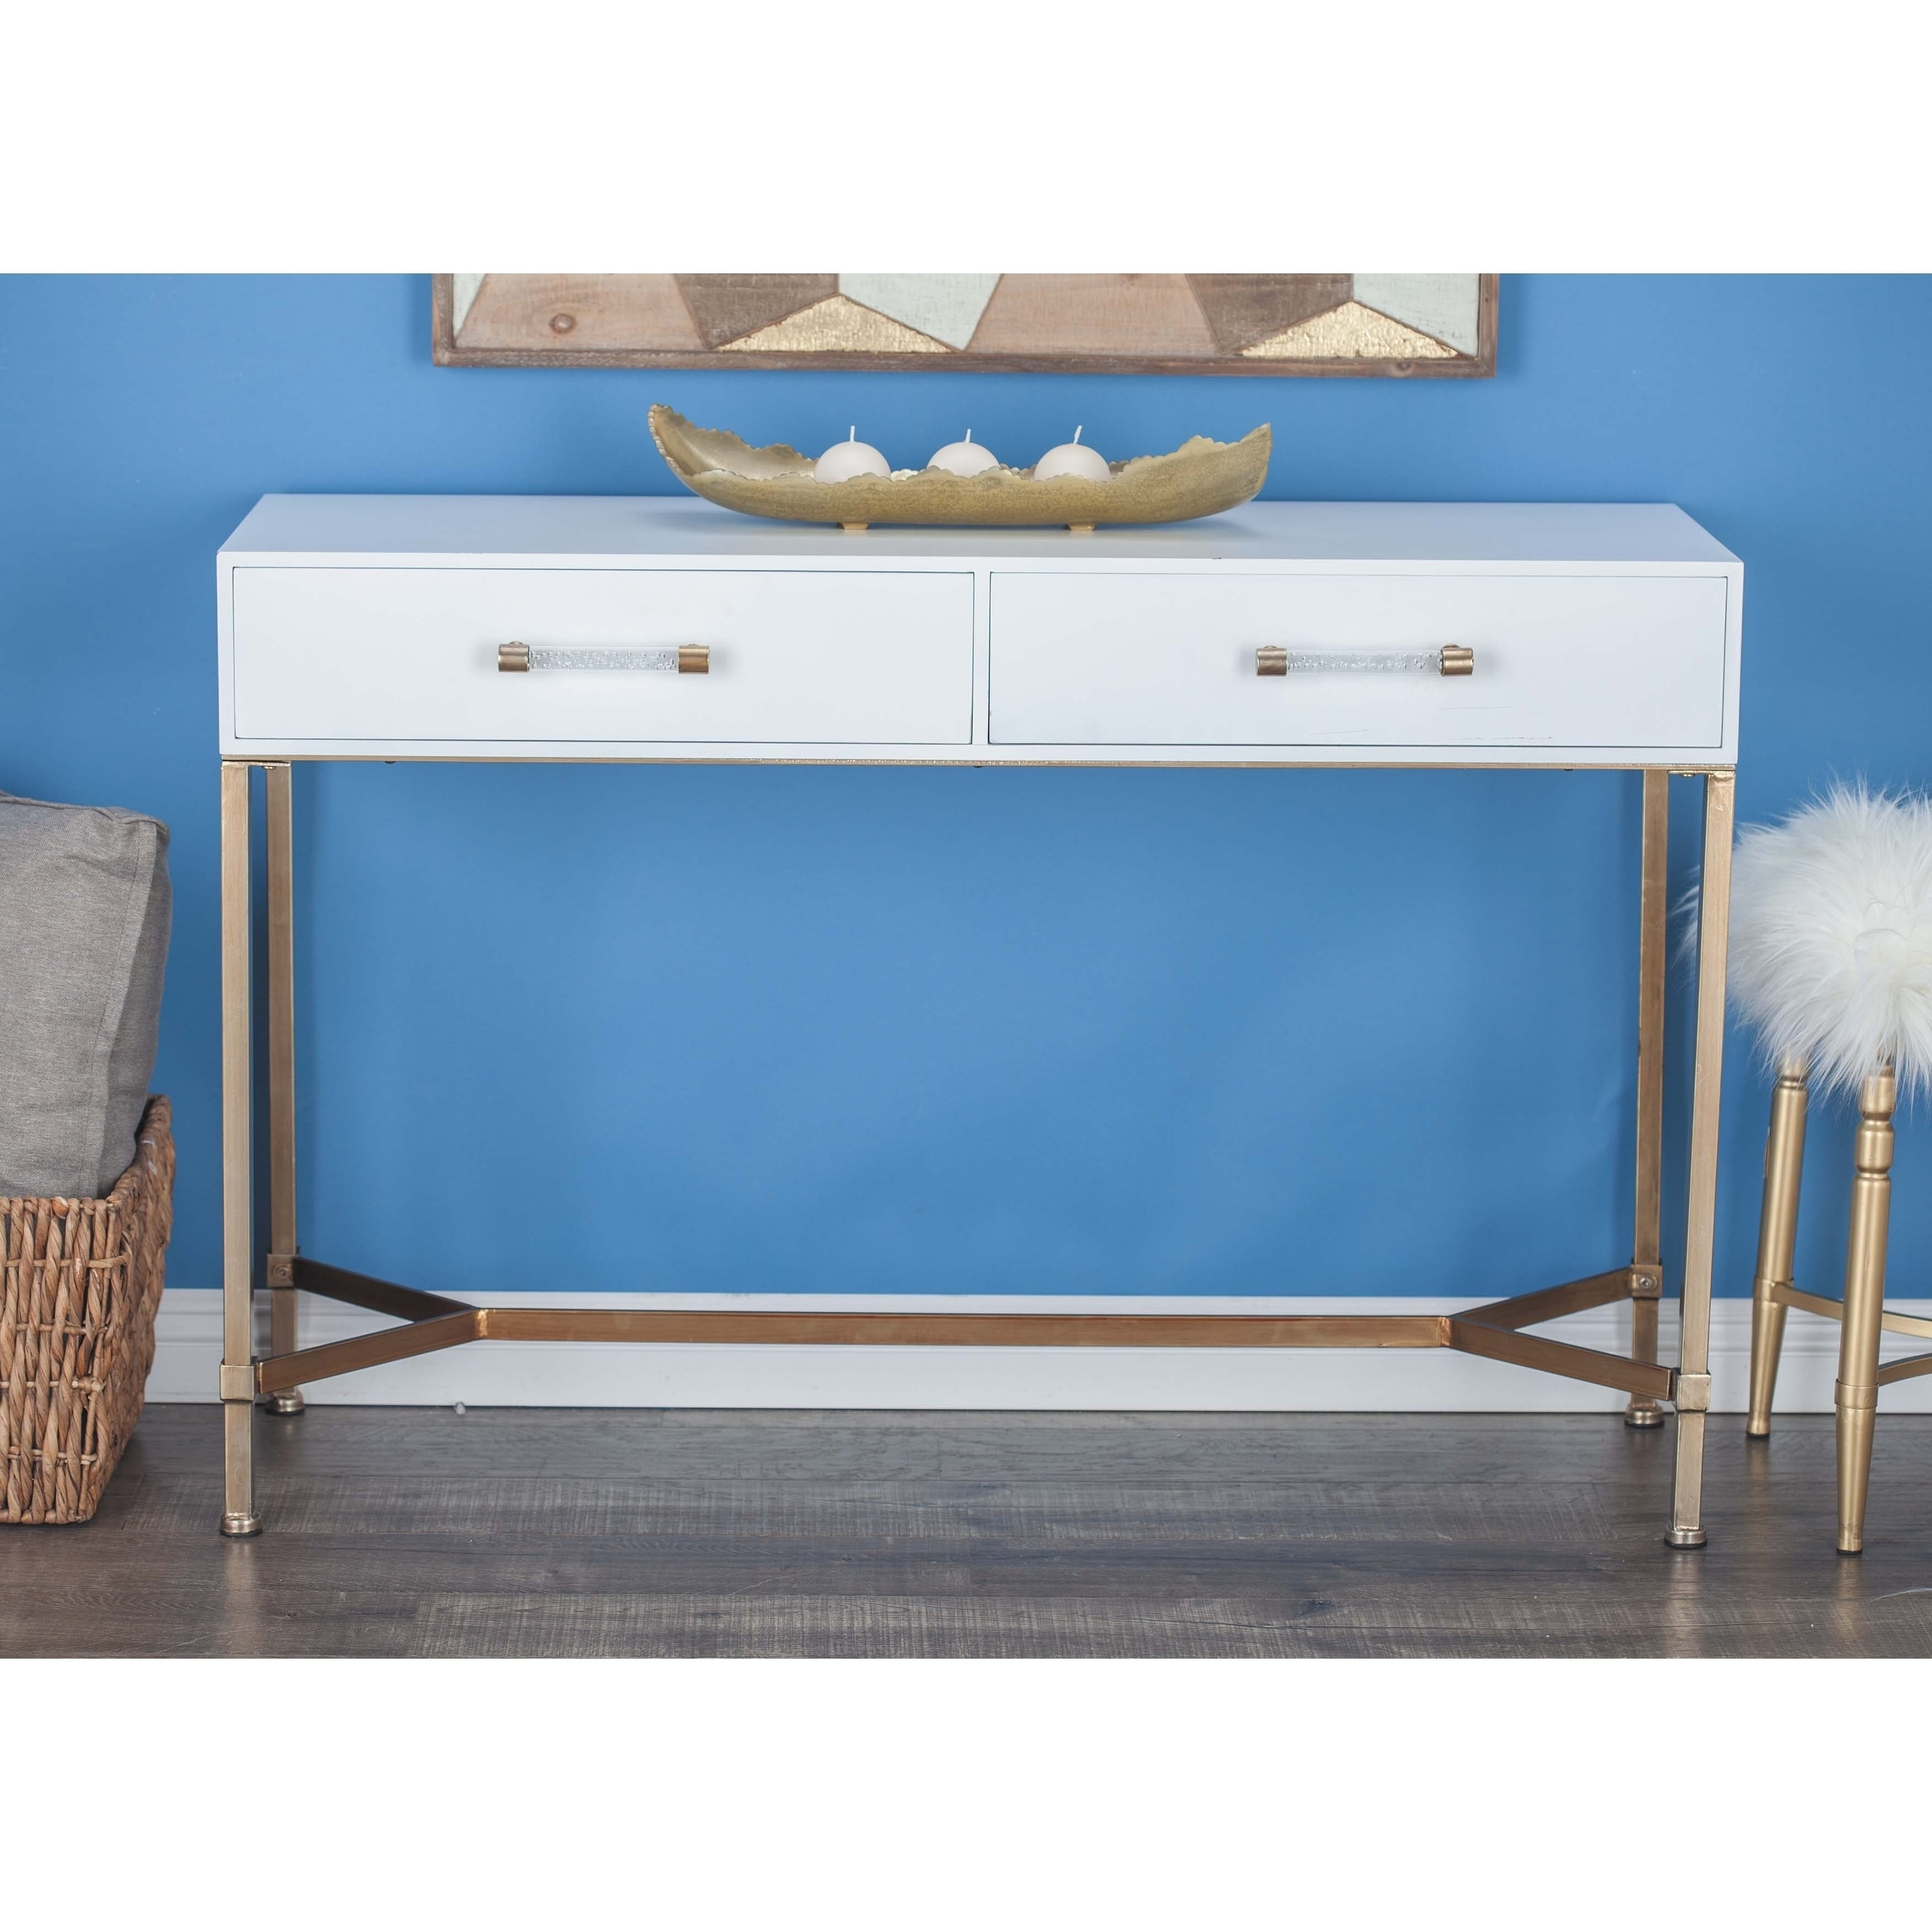 Shop Modern 31 Inch Rectangular White 2 Drawer Console Table By